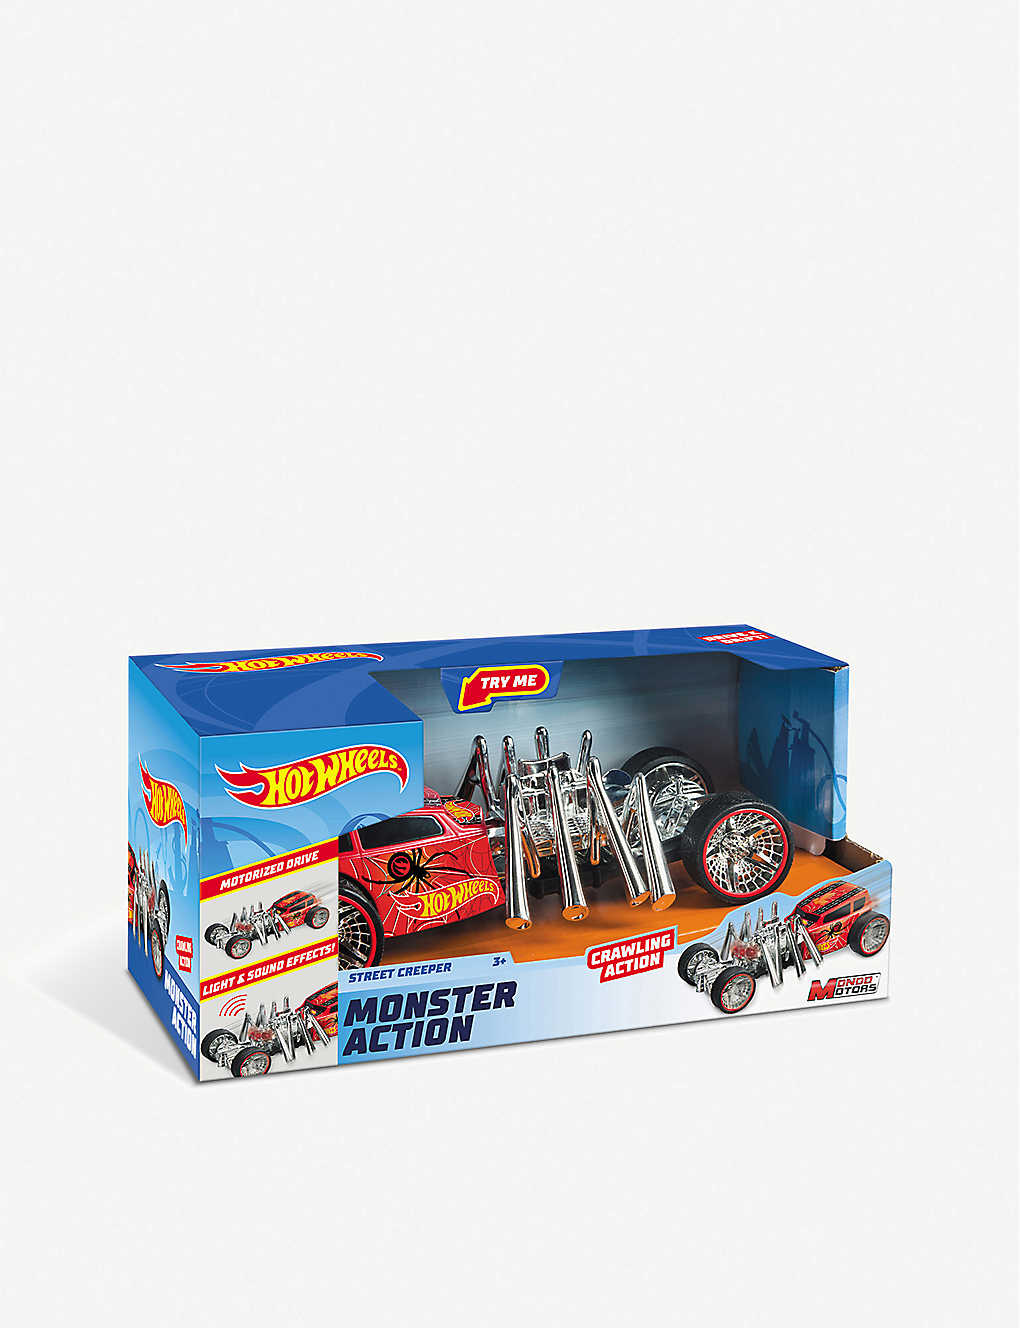 HOTWHEELS: Monster Action Street Creeper car toy